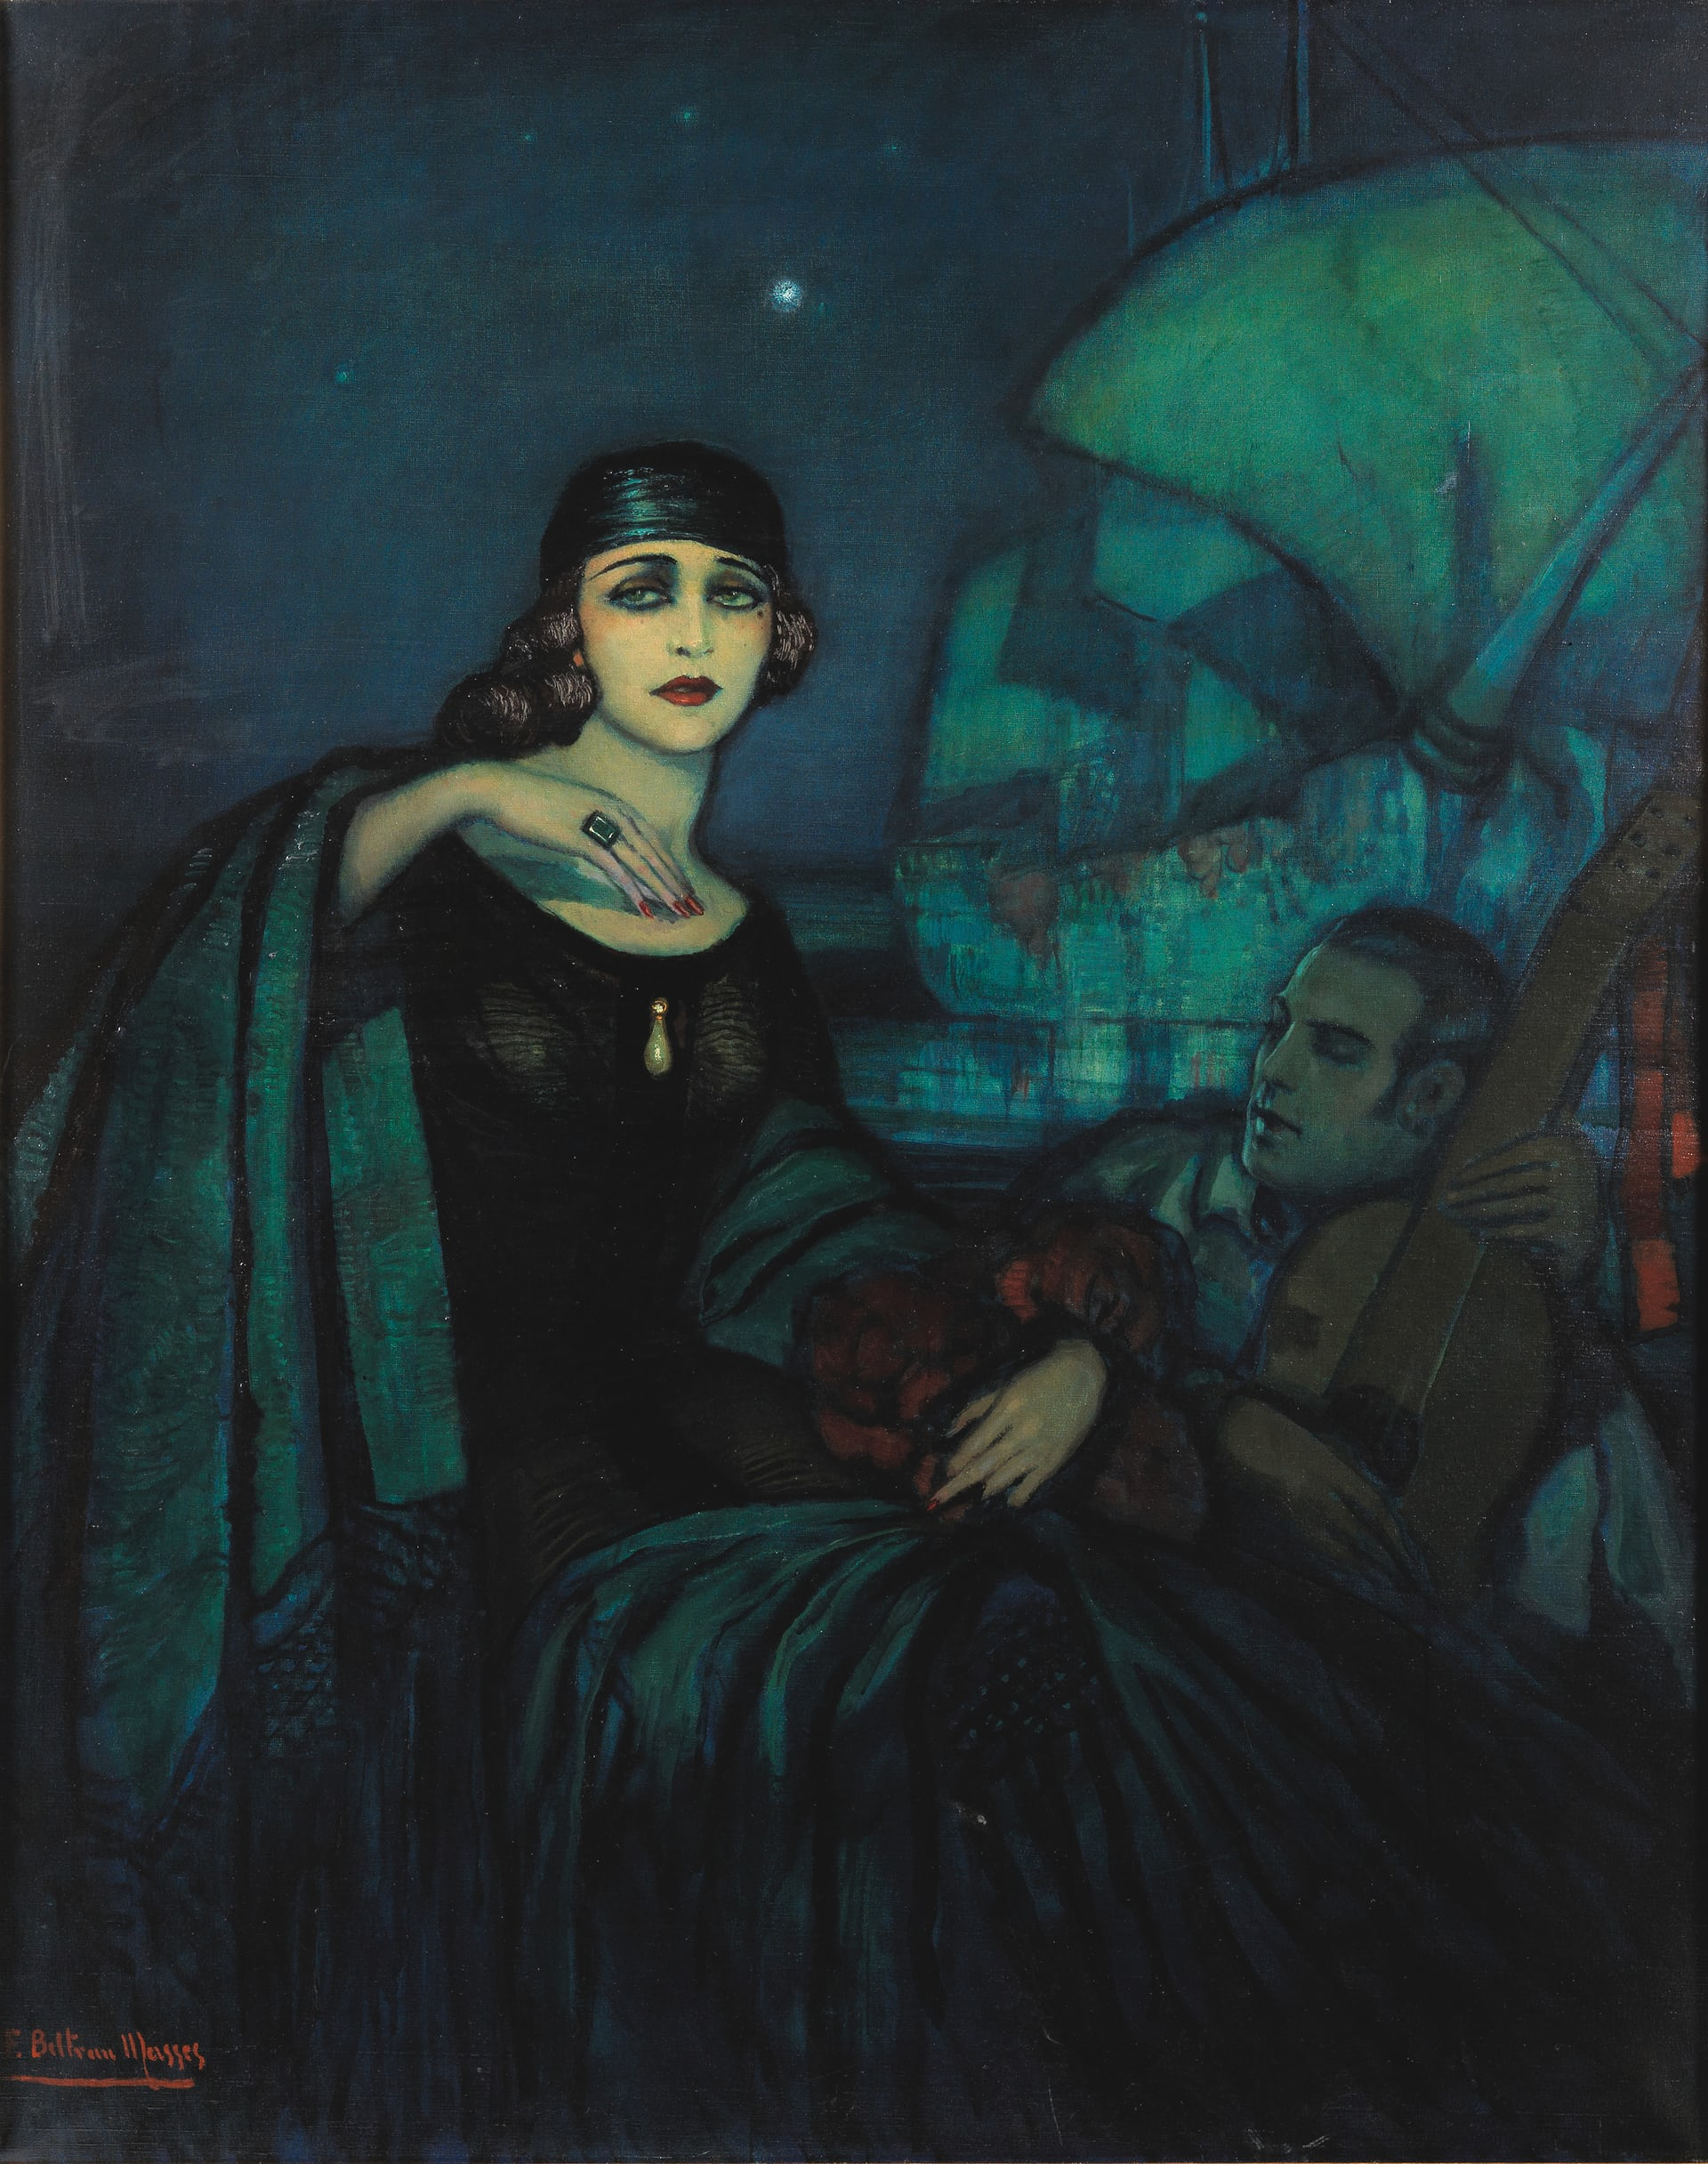 This painting by Federico Beltrán Masses depicts a reclining Valentino and his lover, Pola Negri, wearing the infamous ring